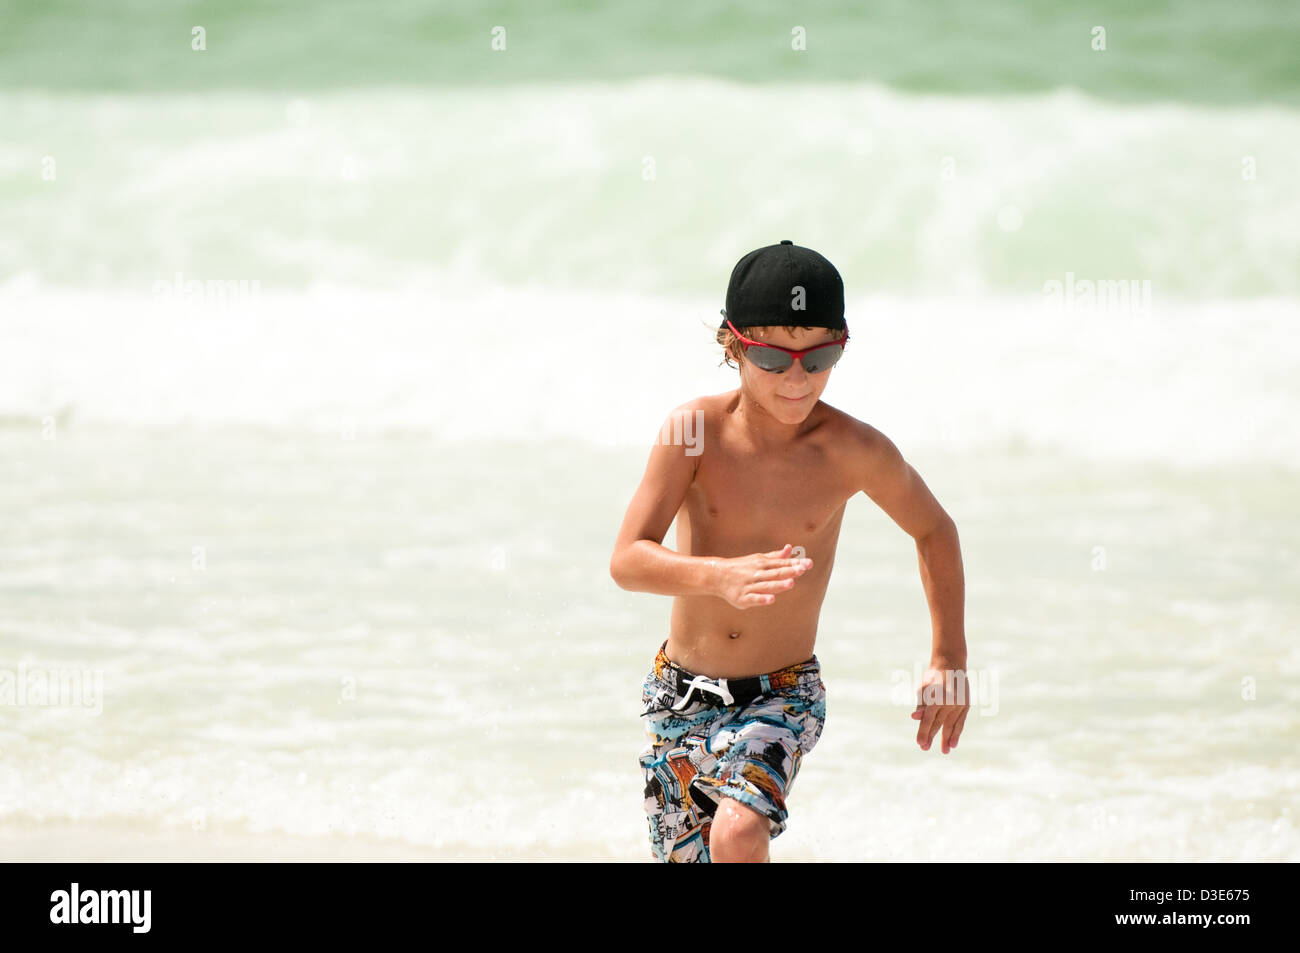 Young boy running through the ocean water on a beach wearing sunglasses and backwards hat. Stock Photo